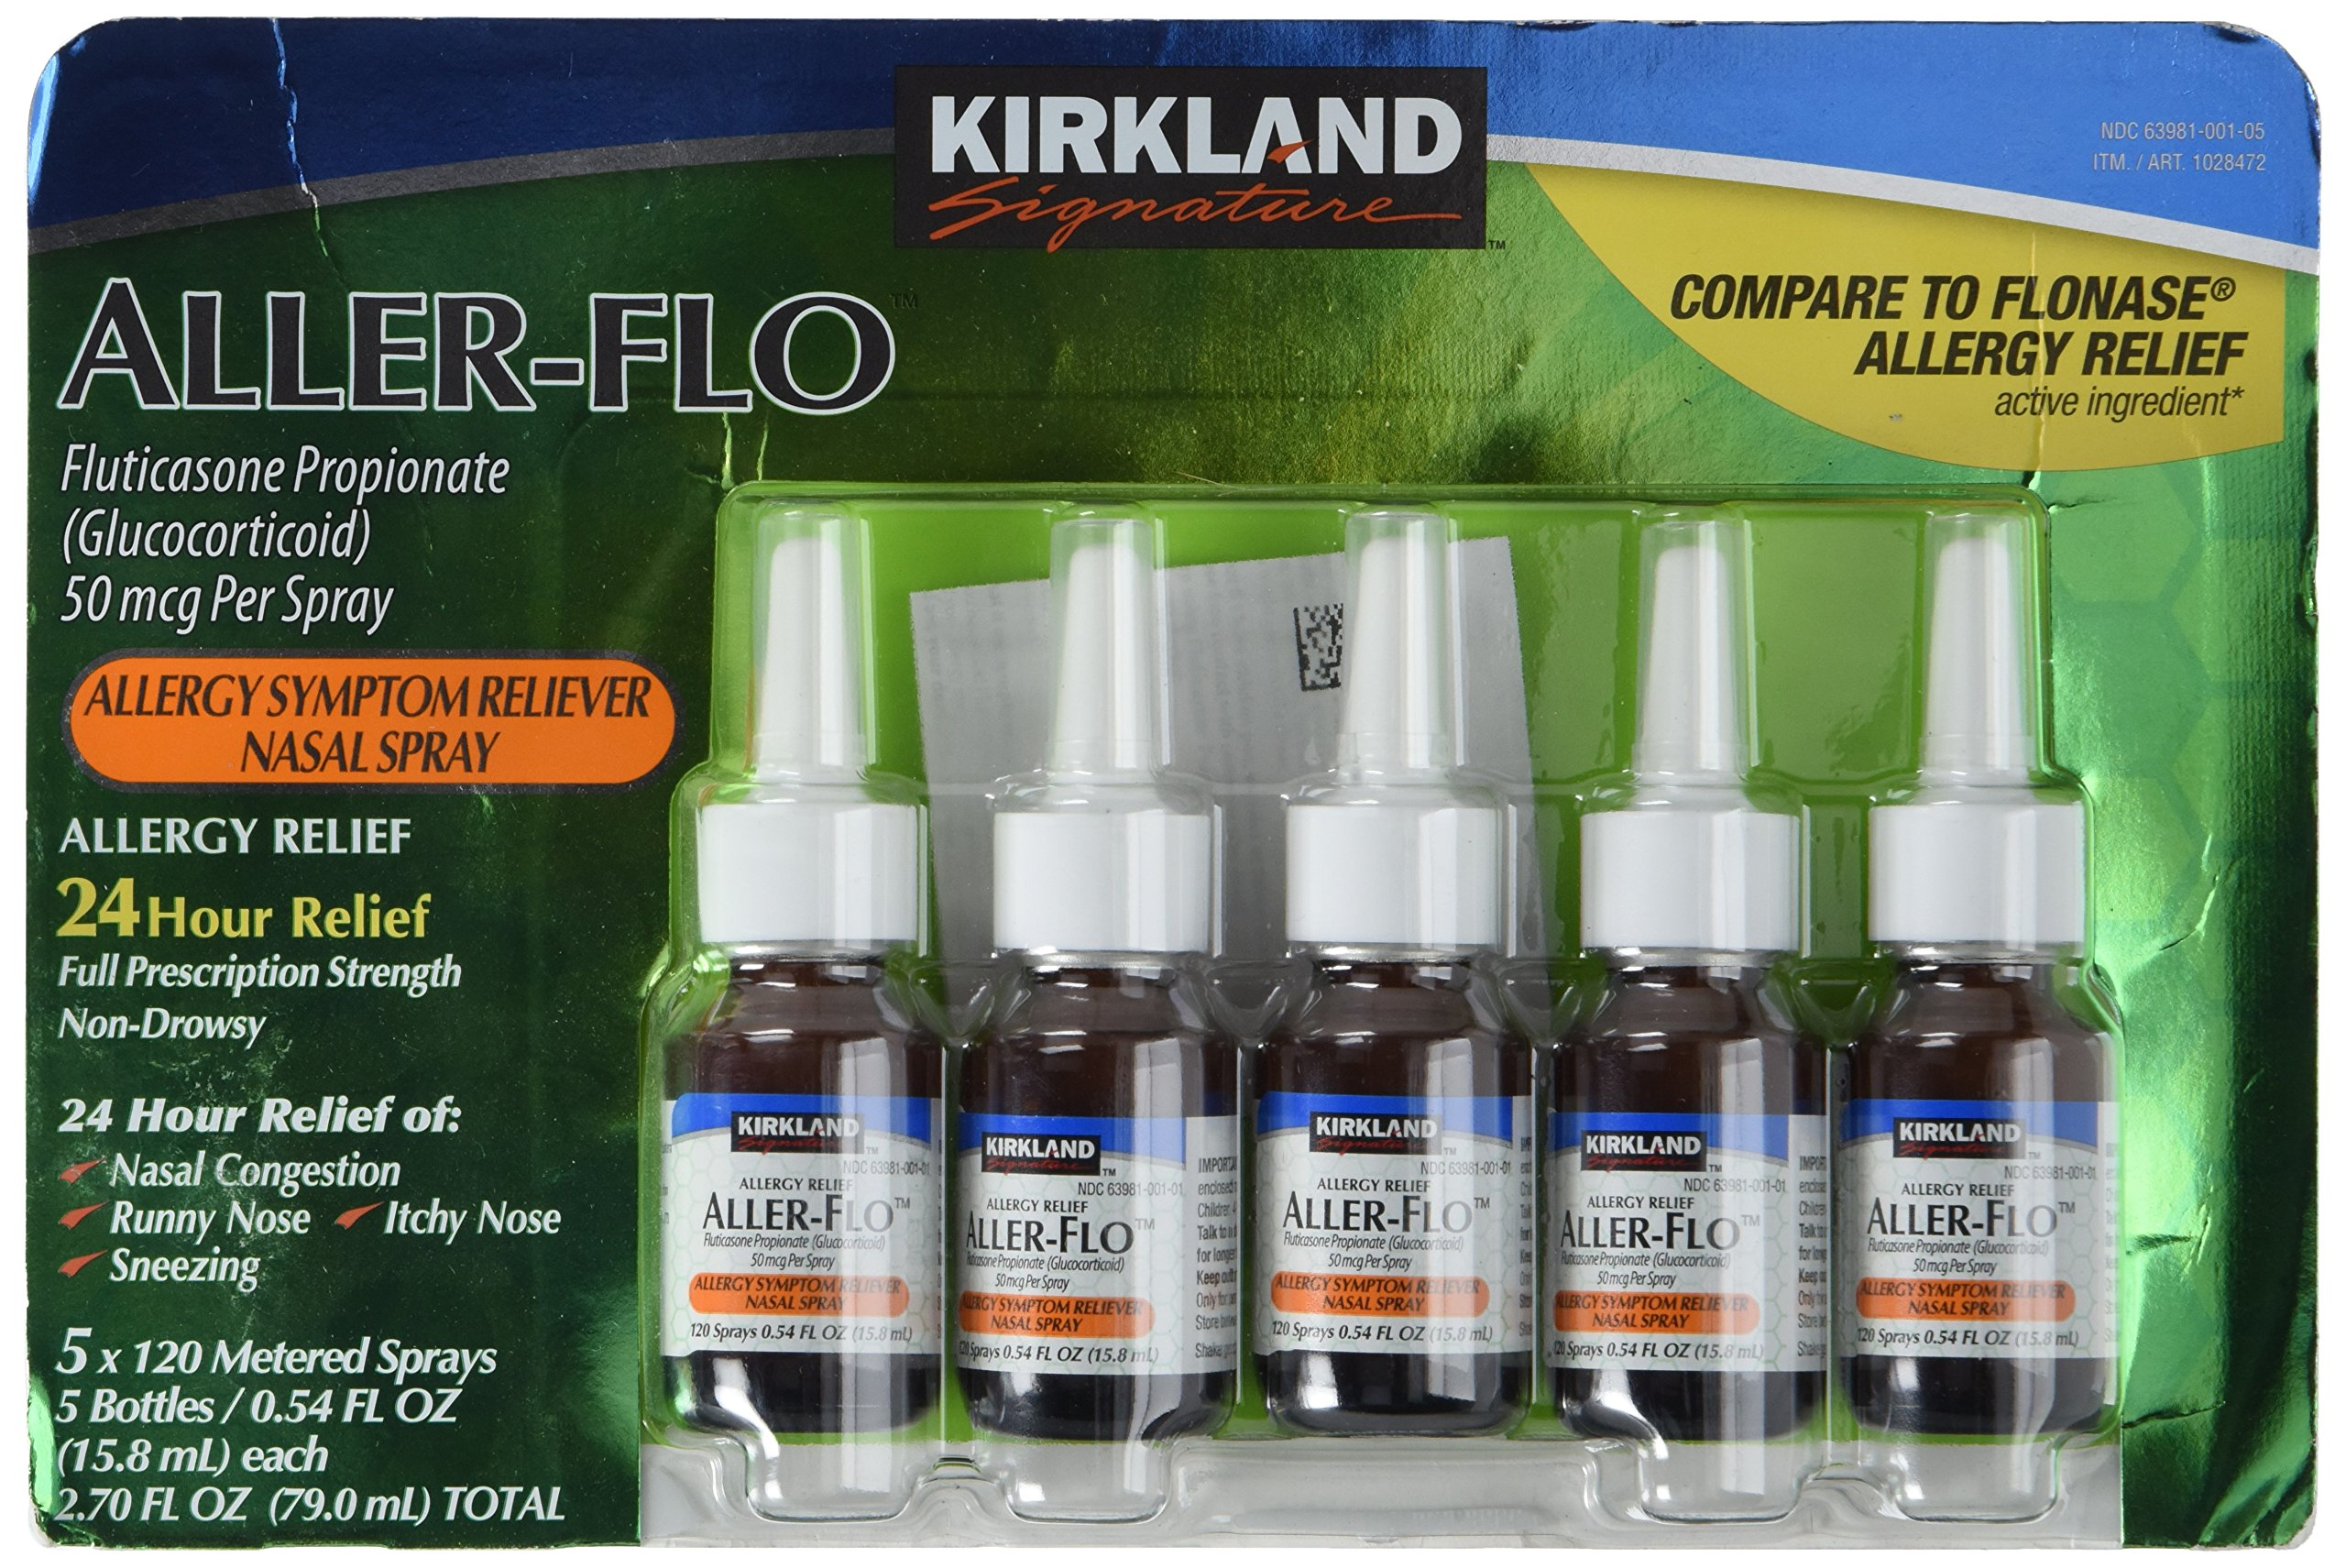 Kirkland Aller-Flo Fluticasone Propionate (Glucorticoid) 5 Bottles x 120 Metered Sprays .54 Fl OZ per Bottle (15.84 mL x 5) 2.70 OZ Total (79.0 mL Total) 600 Total Sprays Total by Kirkland Signature